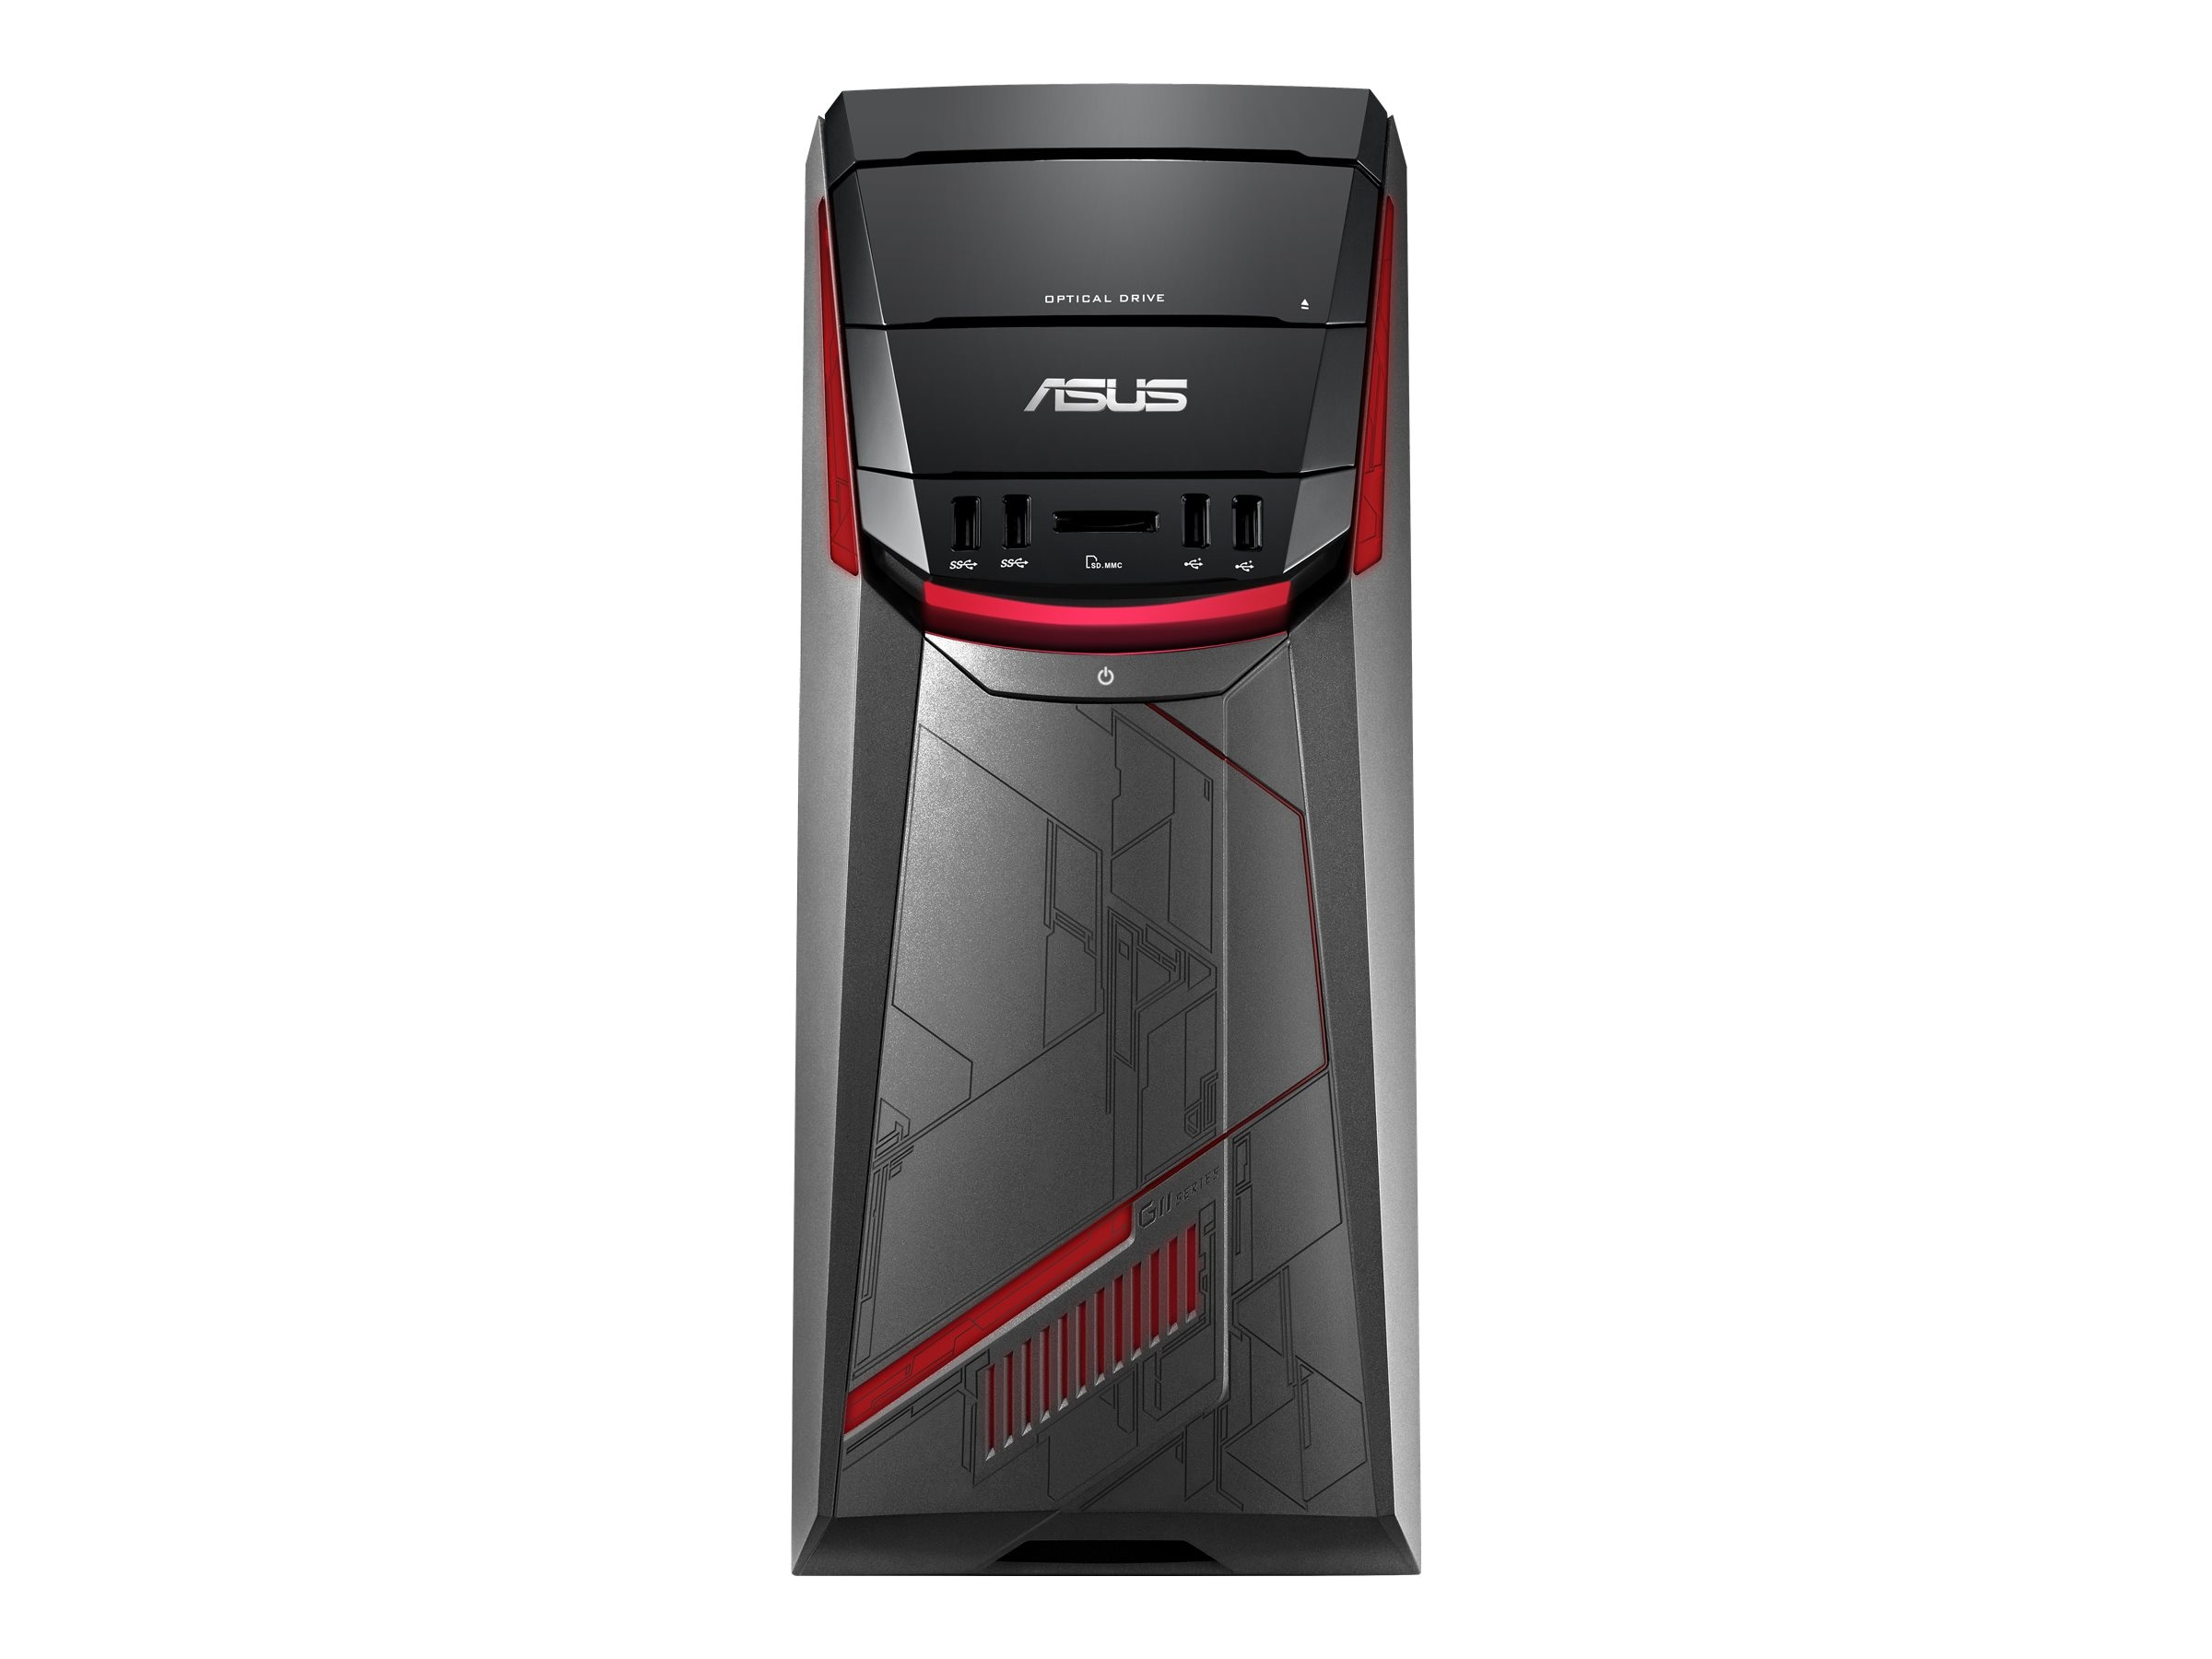 Asus G11CD-DB52 Desktop Core i5-6400 2.7GHz 8GB 1TB GTX950 W10